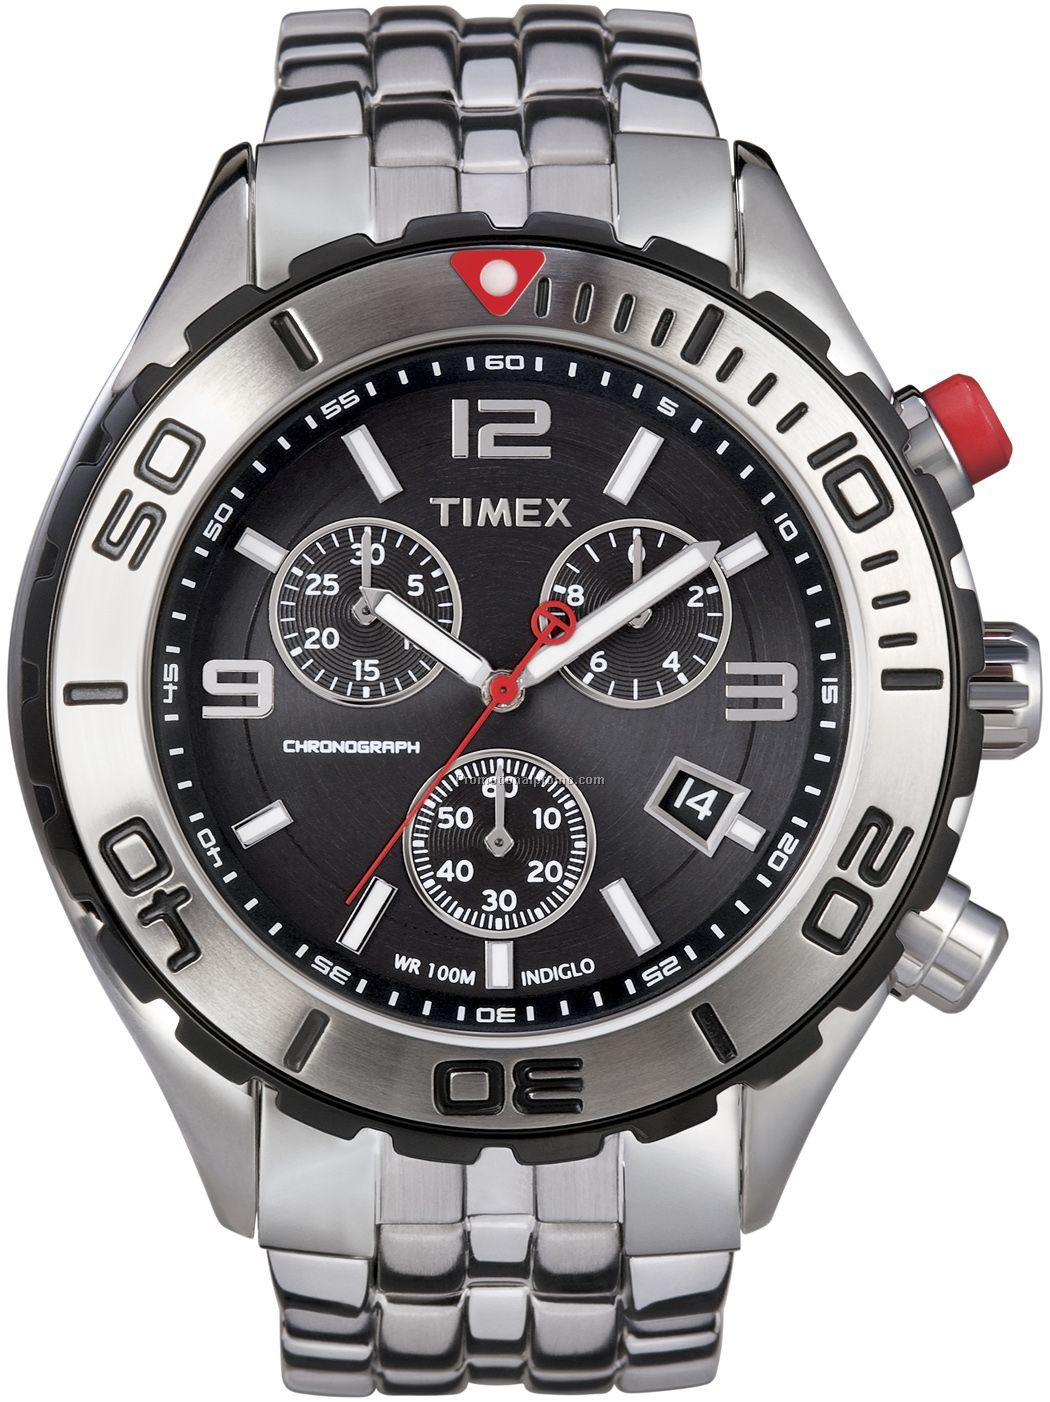 Timex men37491 sl series39200chronograph china wholesale for Timex wall clocks india